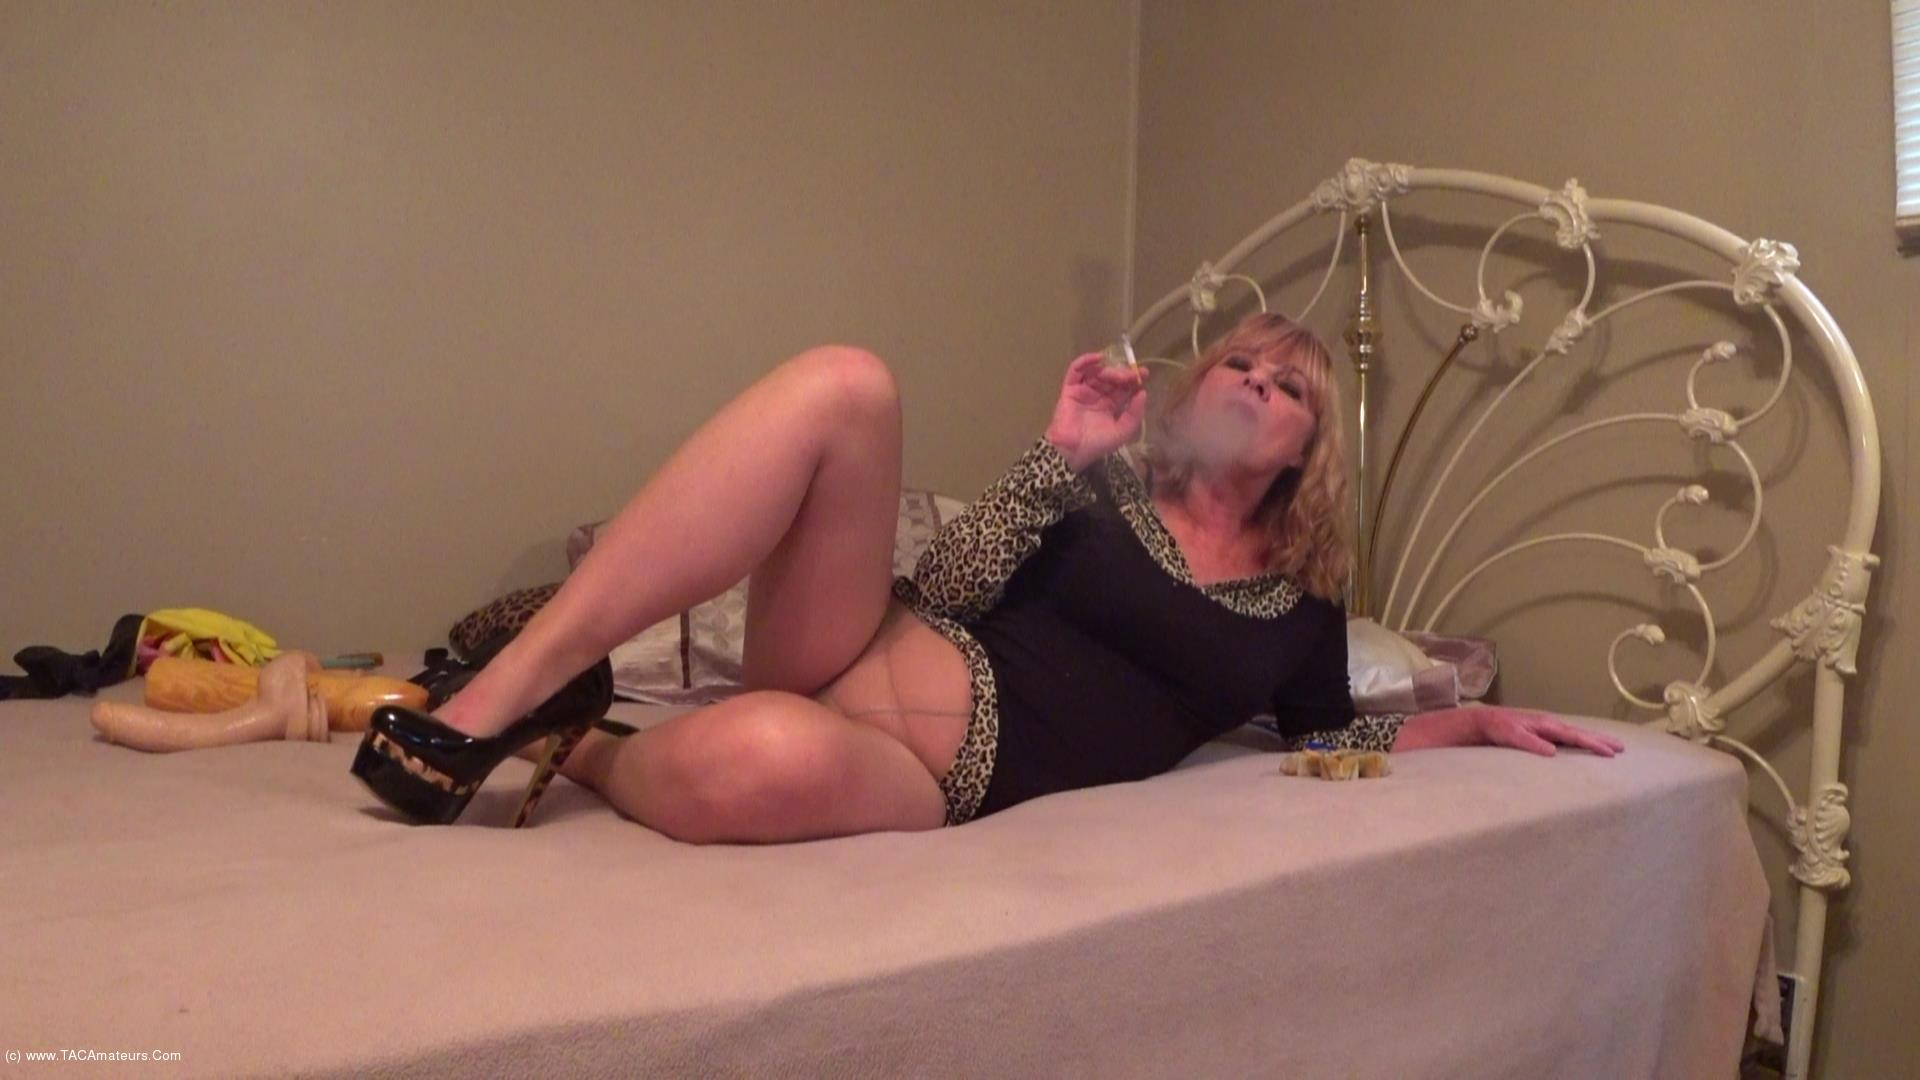 CougarBabeJolee - Sexy In Pantyhose & Heels Smoking scene 2